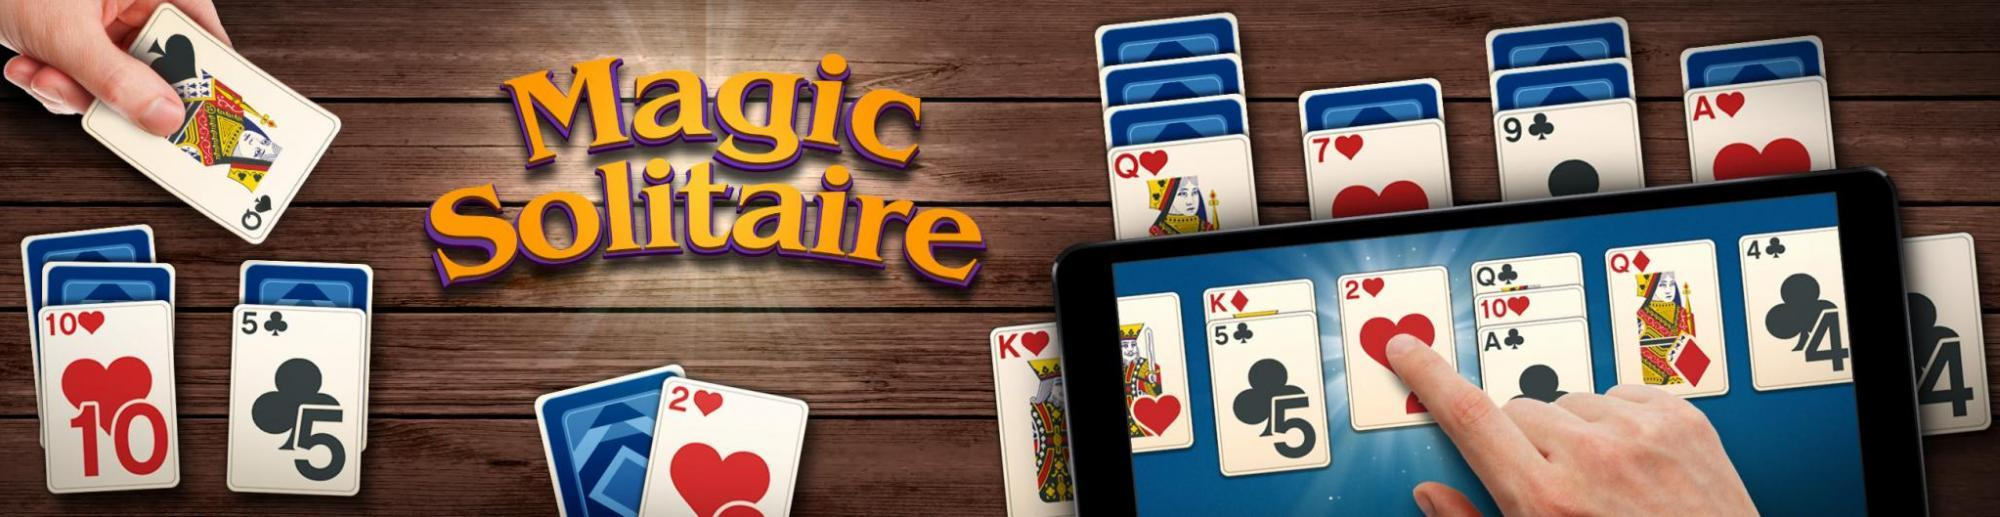 Magic Solitaire Collection баннер